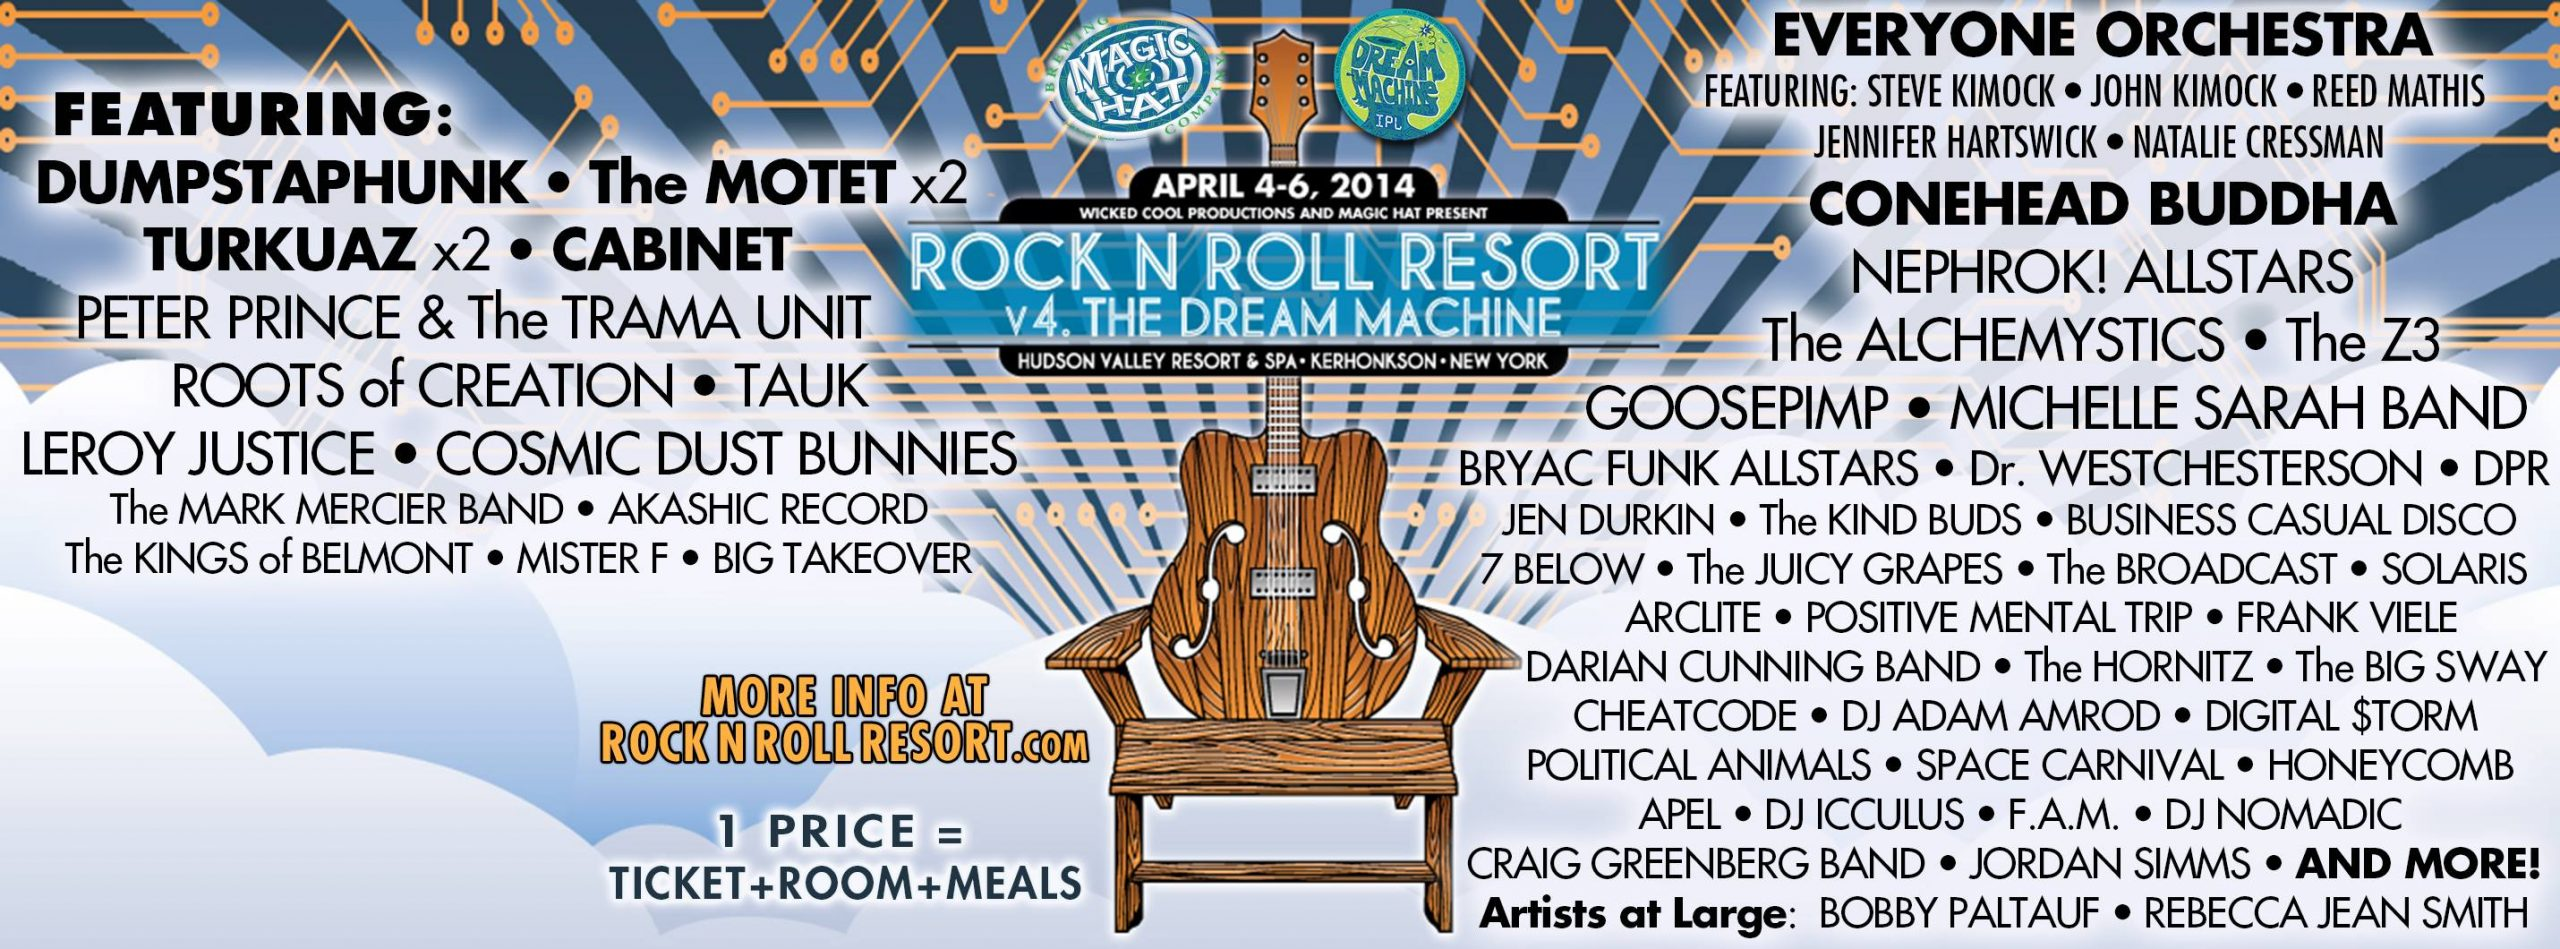 Rock n Roll Resort v4: The Dream Machine